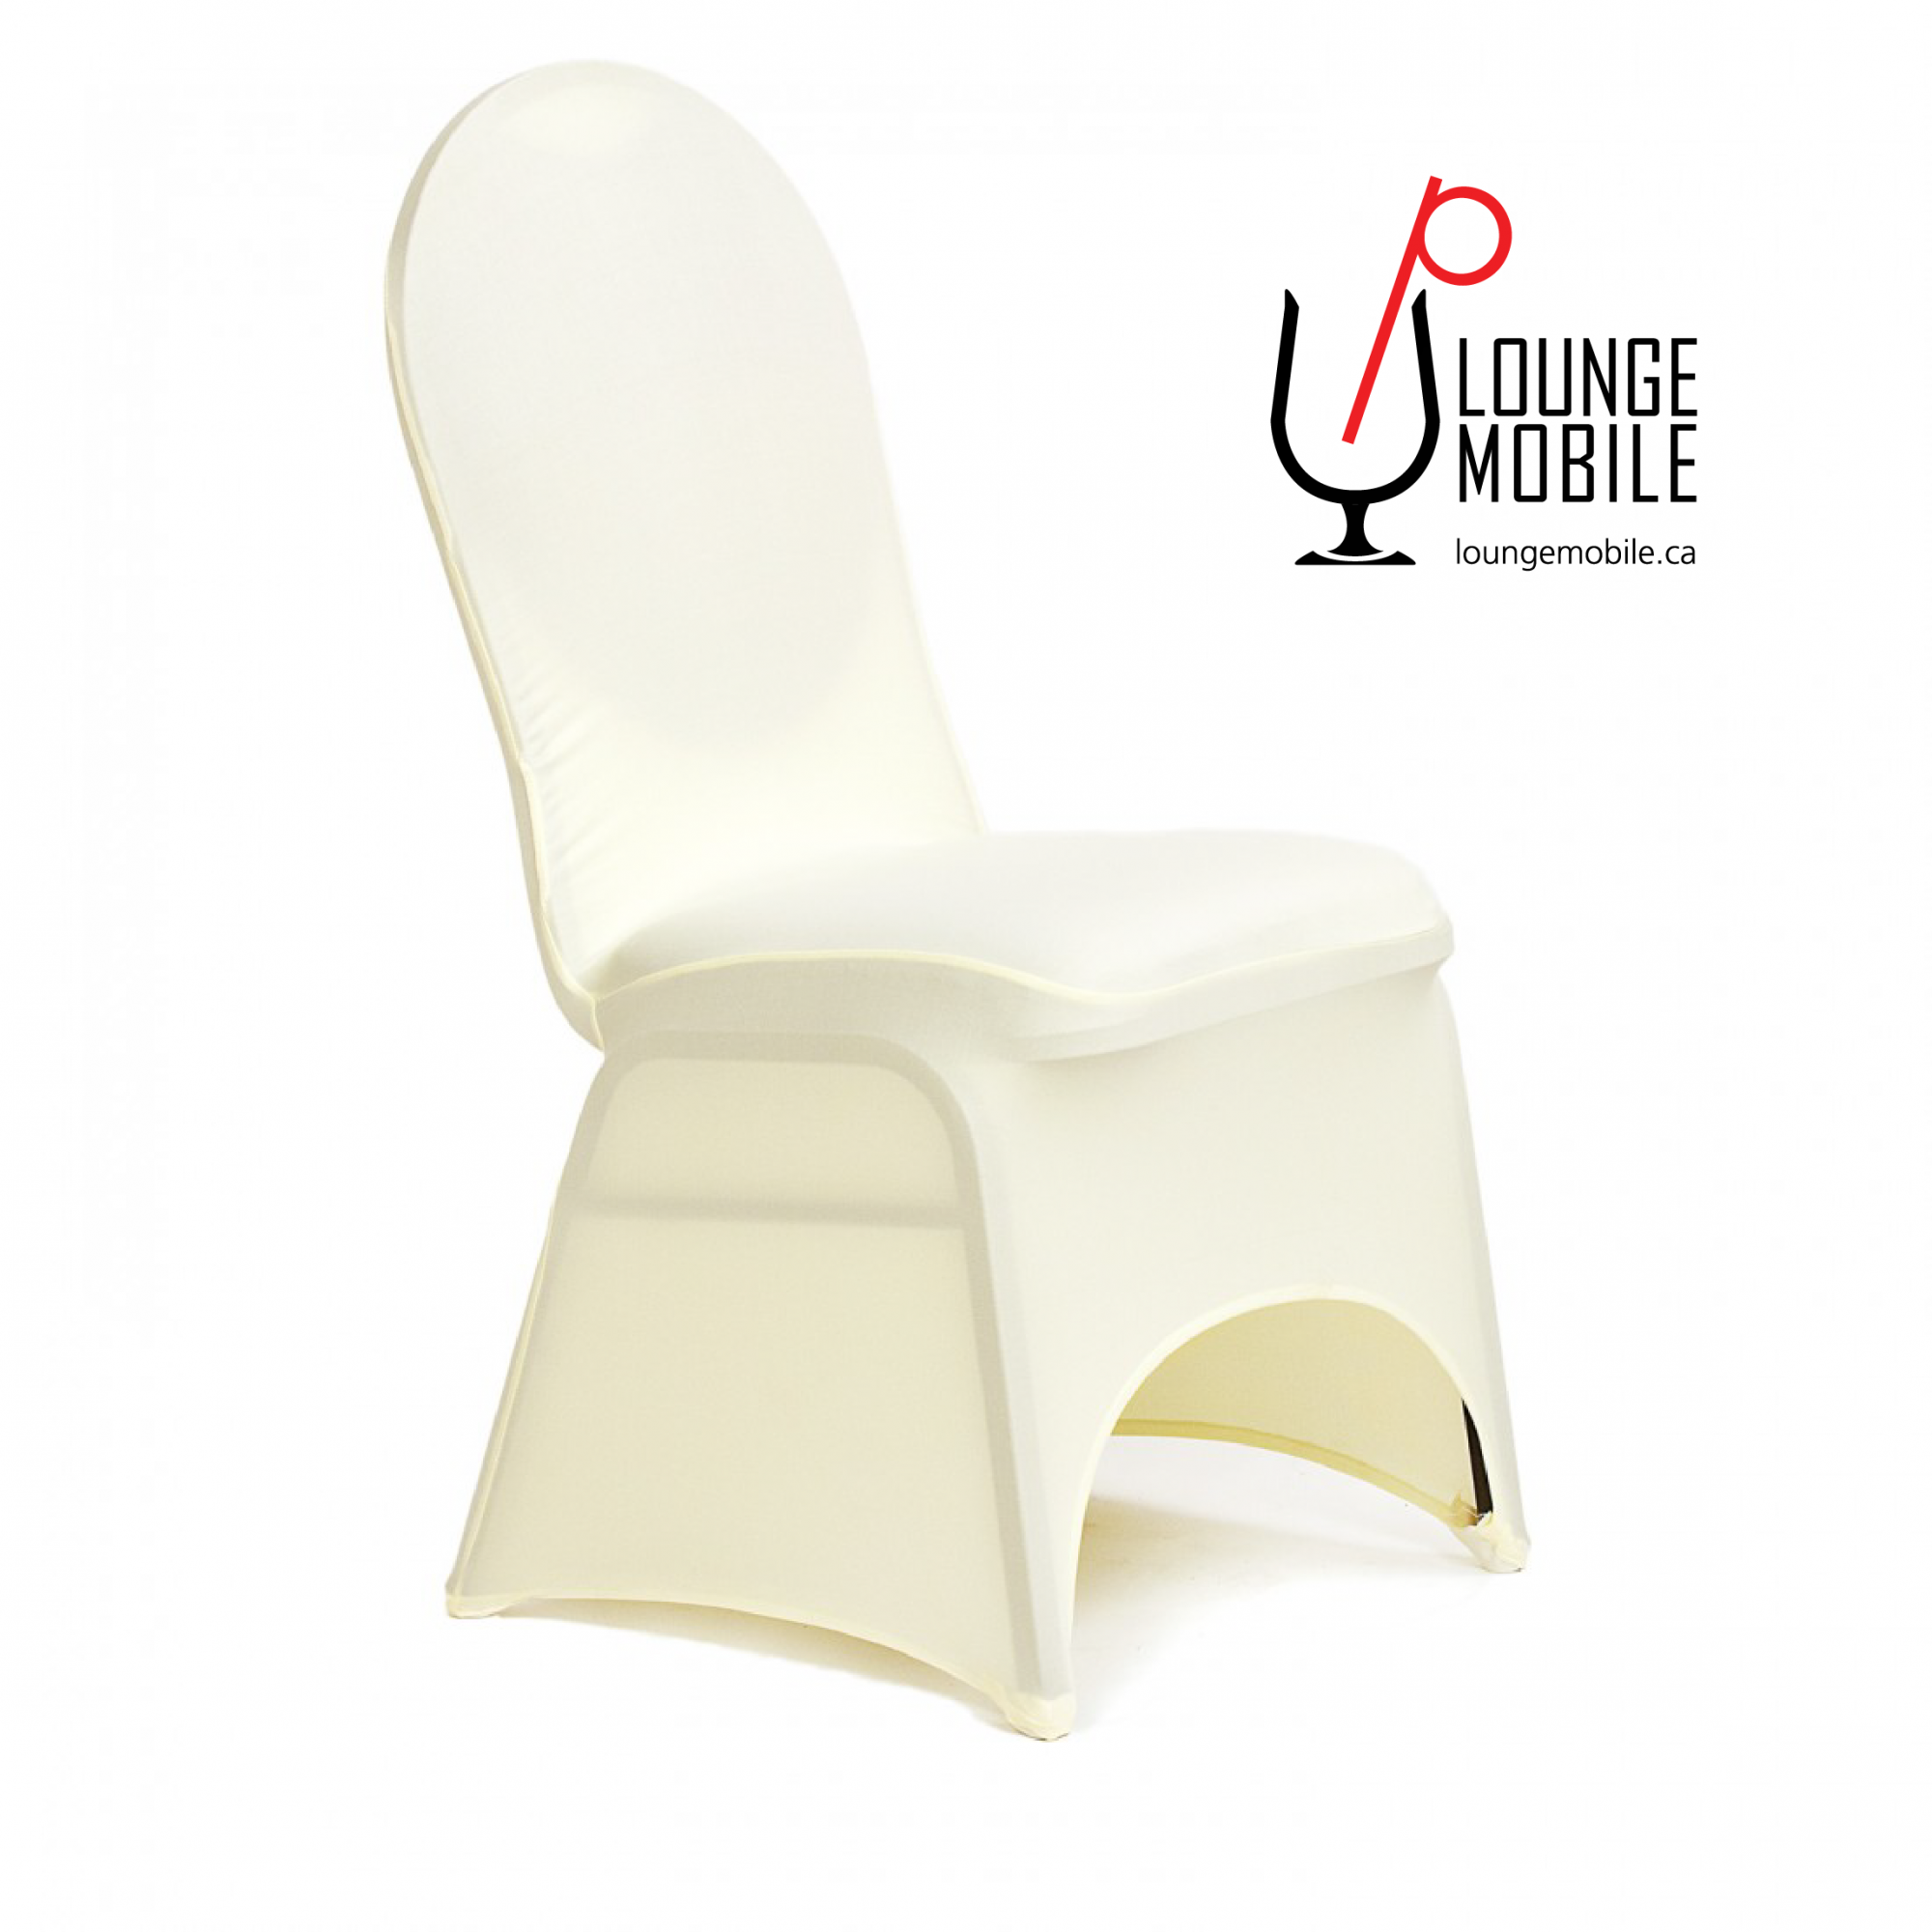 D co housse de chaise universelle mariage 18 nice for Housse chaise